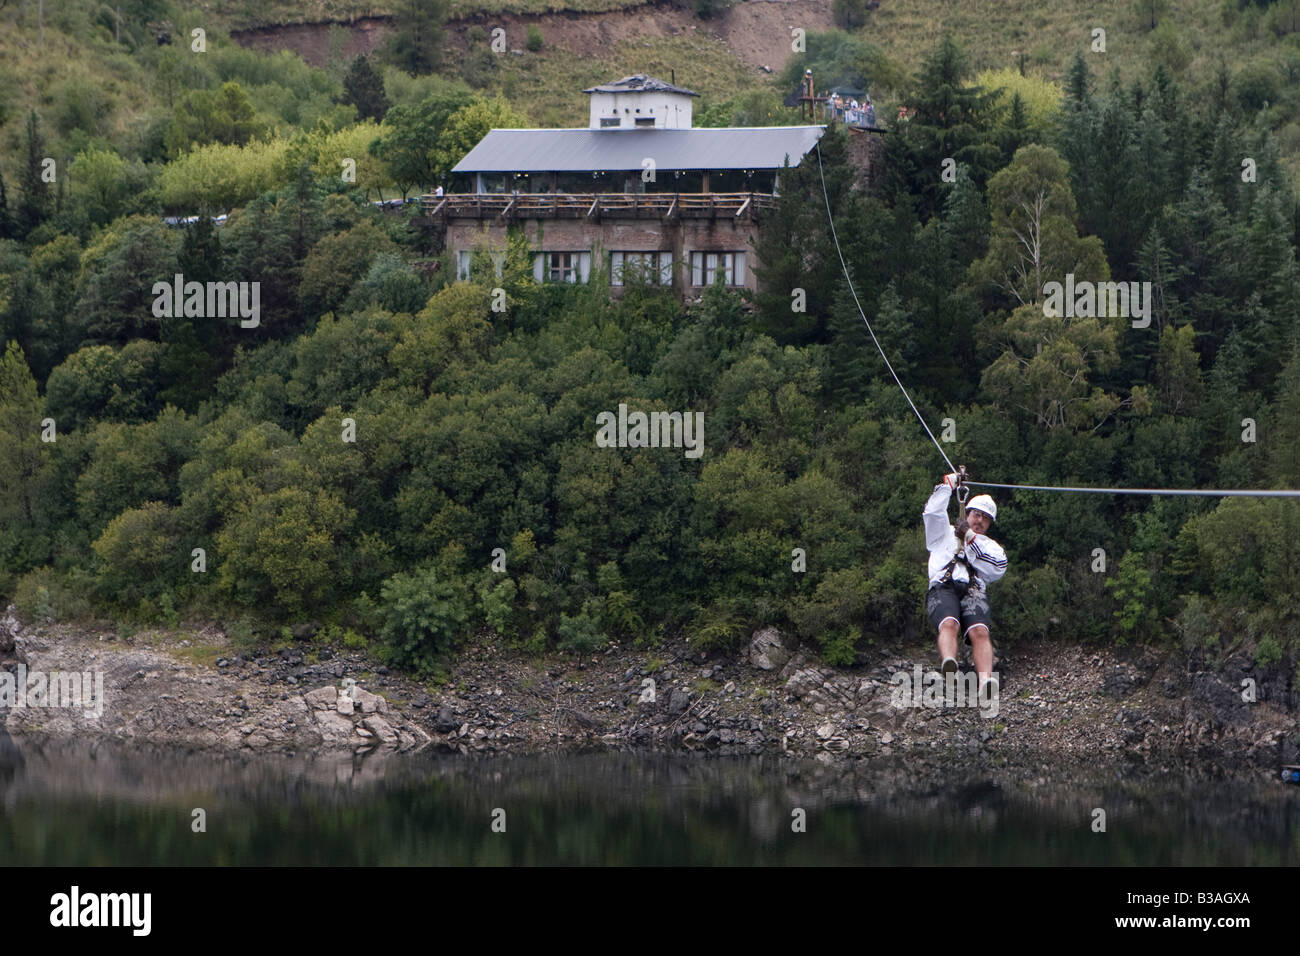 Tourist sliding down in a canopy cable in Dique Los Molinos dam Cordoba Argentina - Stock Image